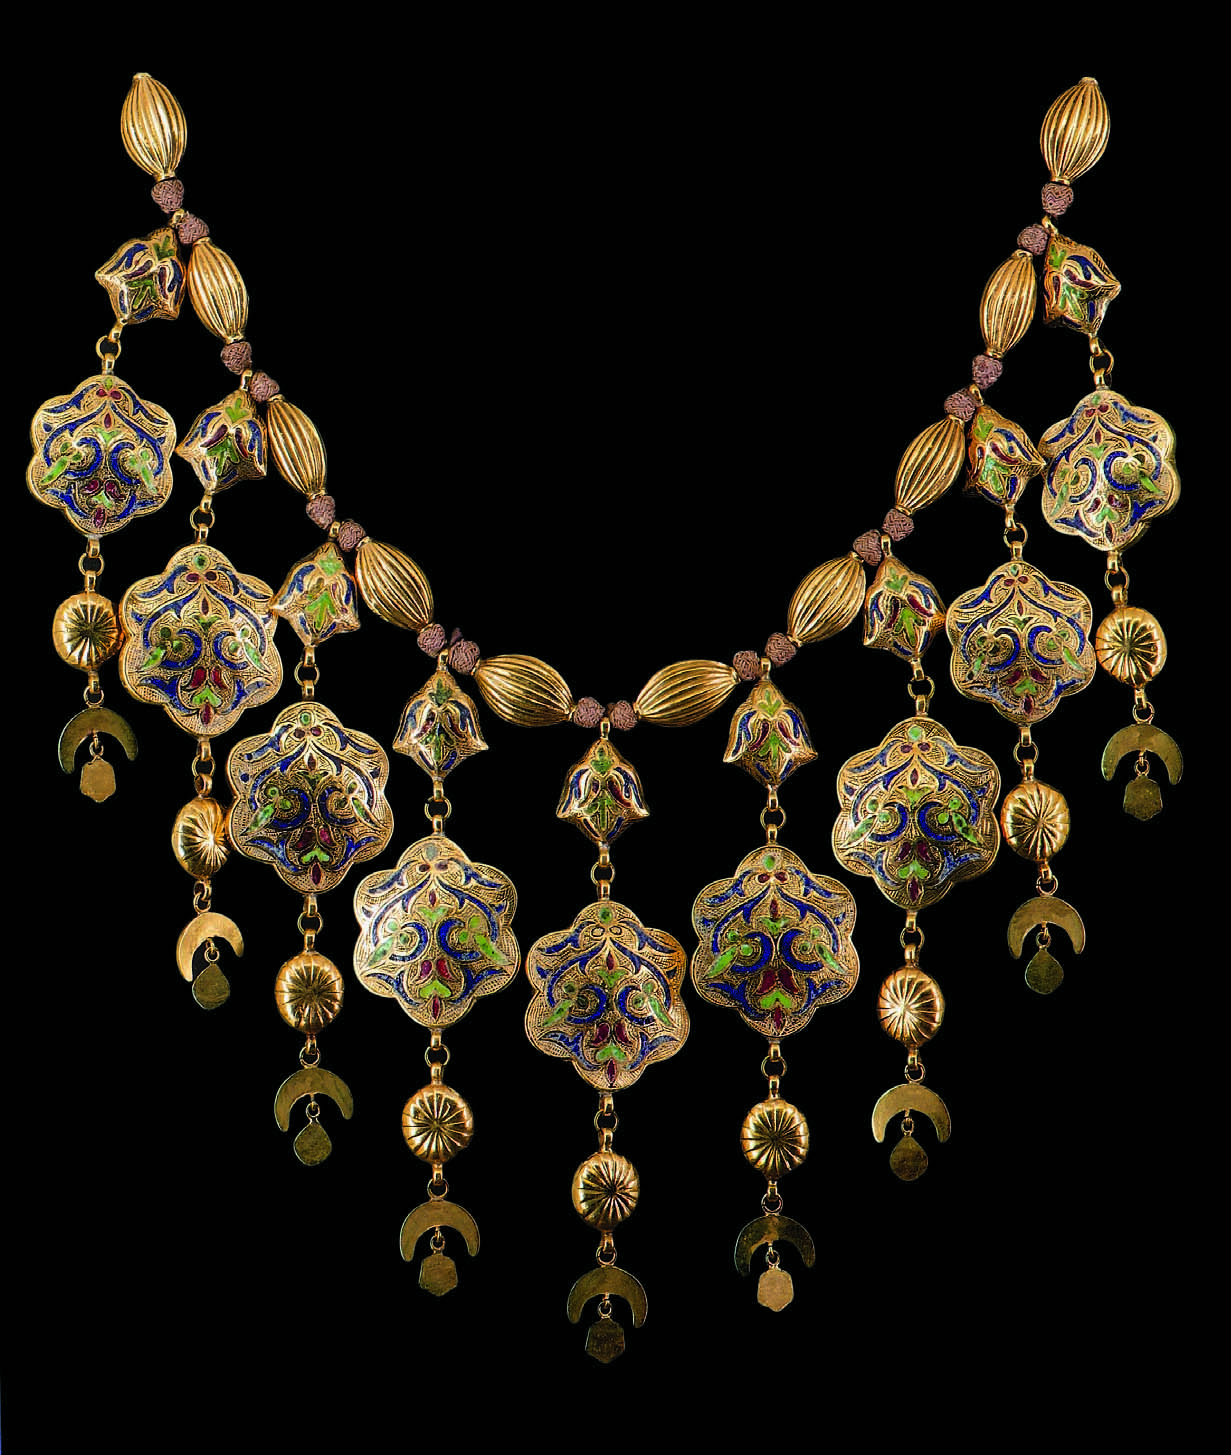 Morocco Wedding Necklace Labbah